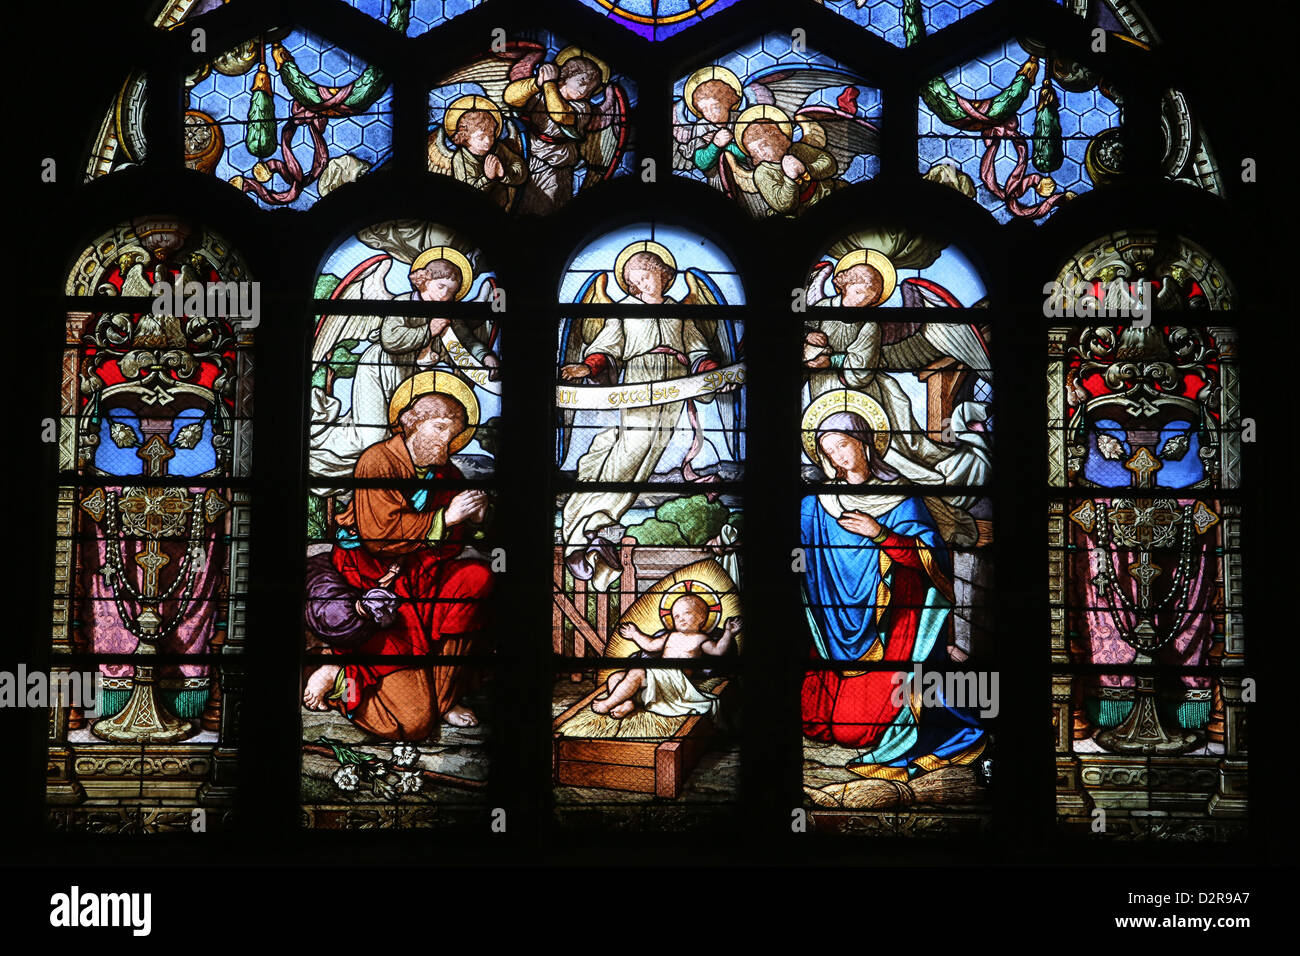 stained glass window stockfotos stained glass window bilder alamy. Black Bedroom Furniture Sets. Home Design Ideas